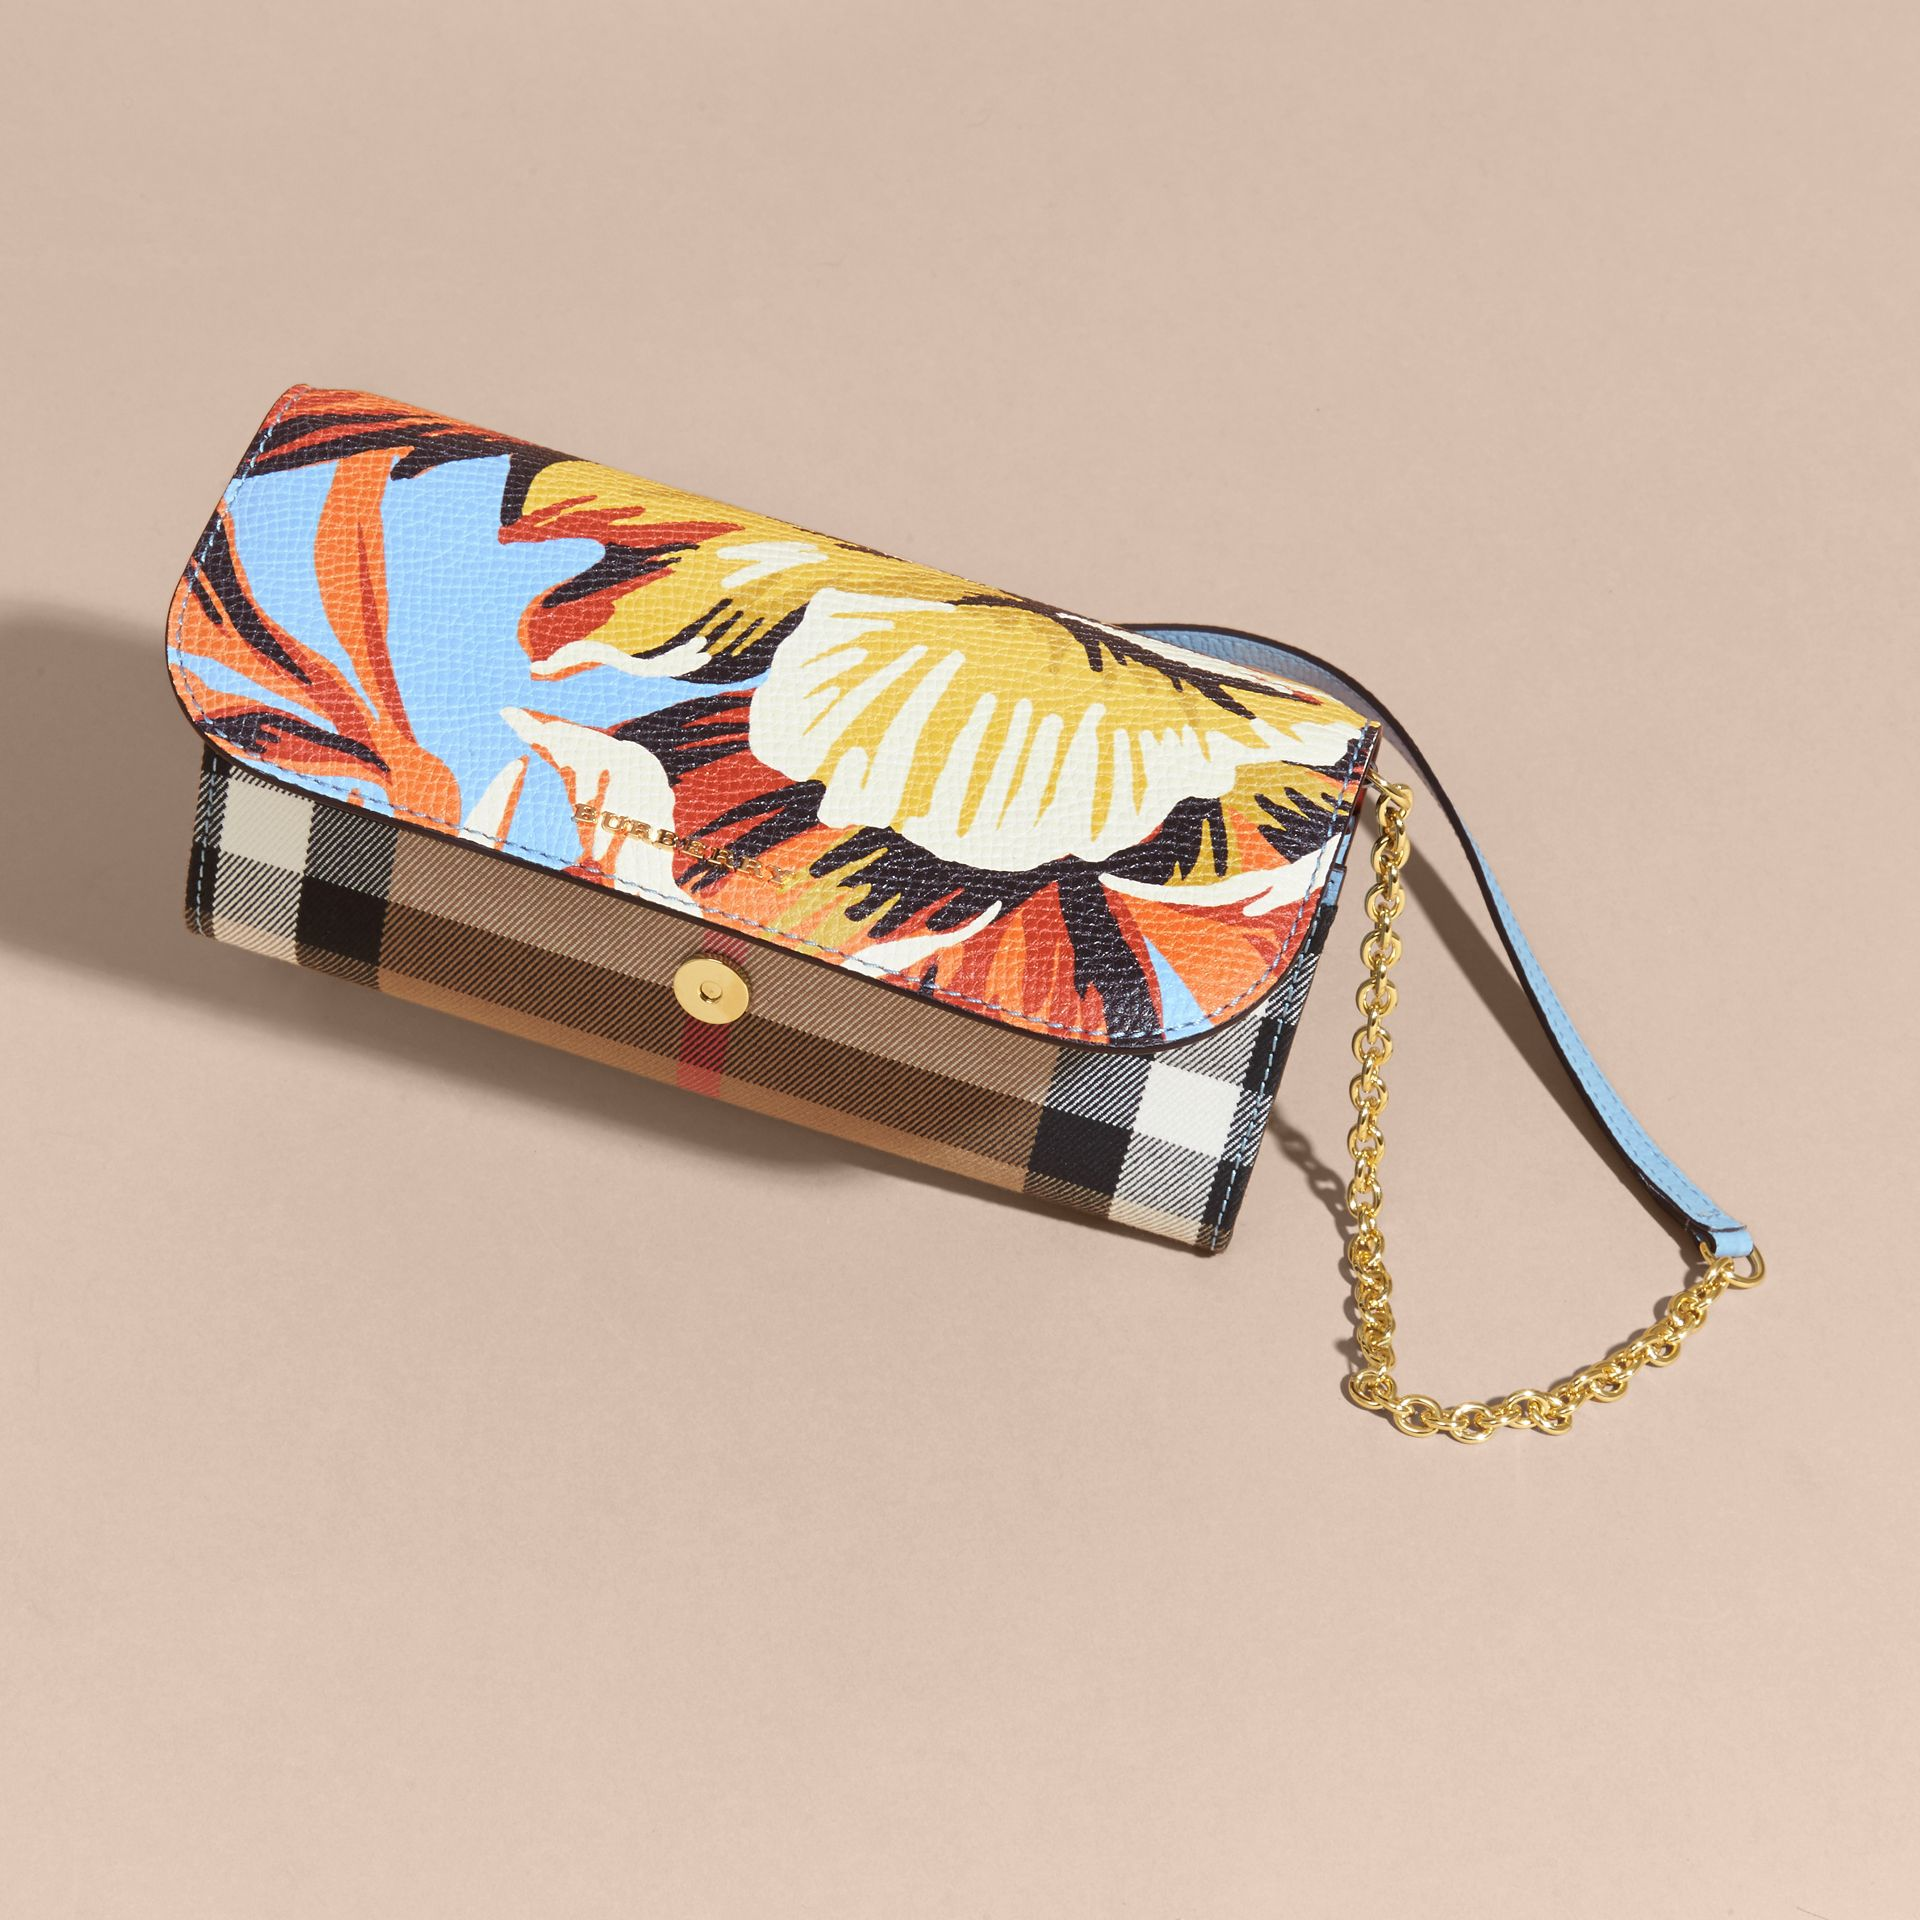 House Check and Peony Rose Print Wallet with Chain in Pale Blue/vibrant Orange - gallery image 7